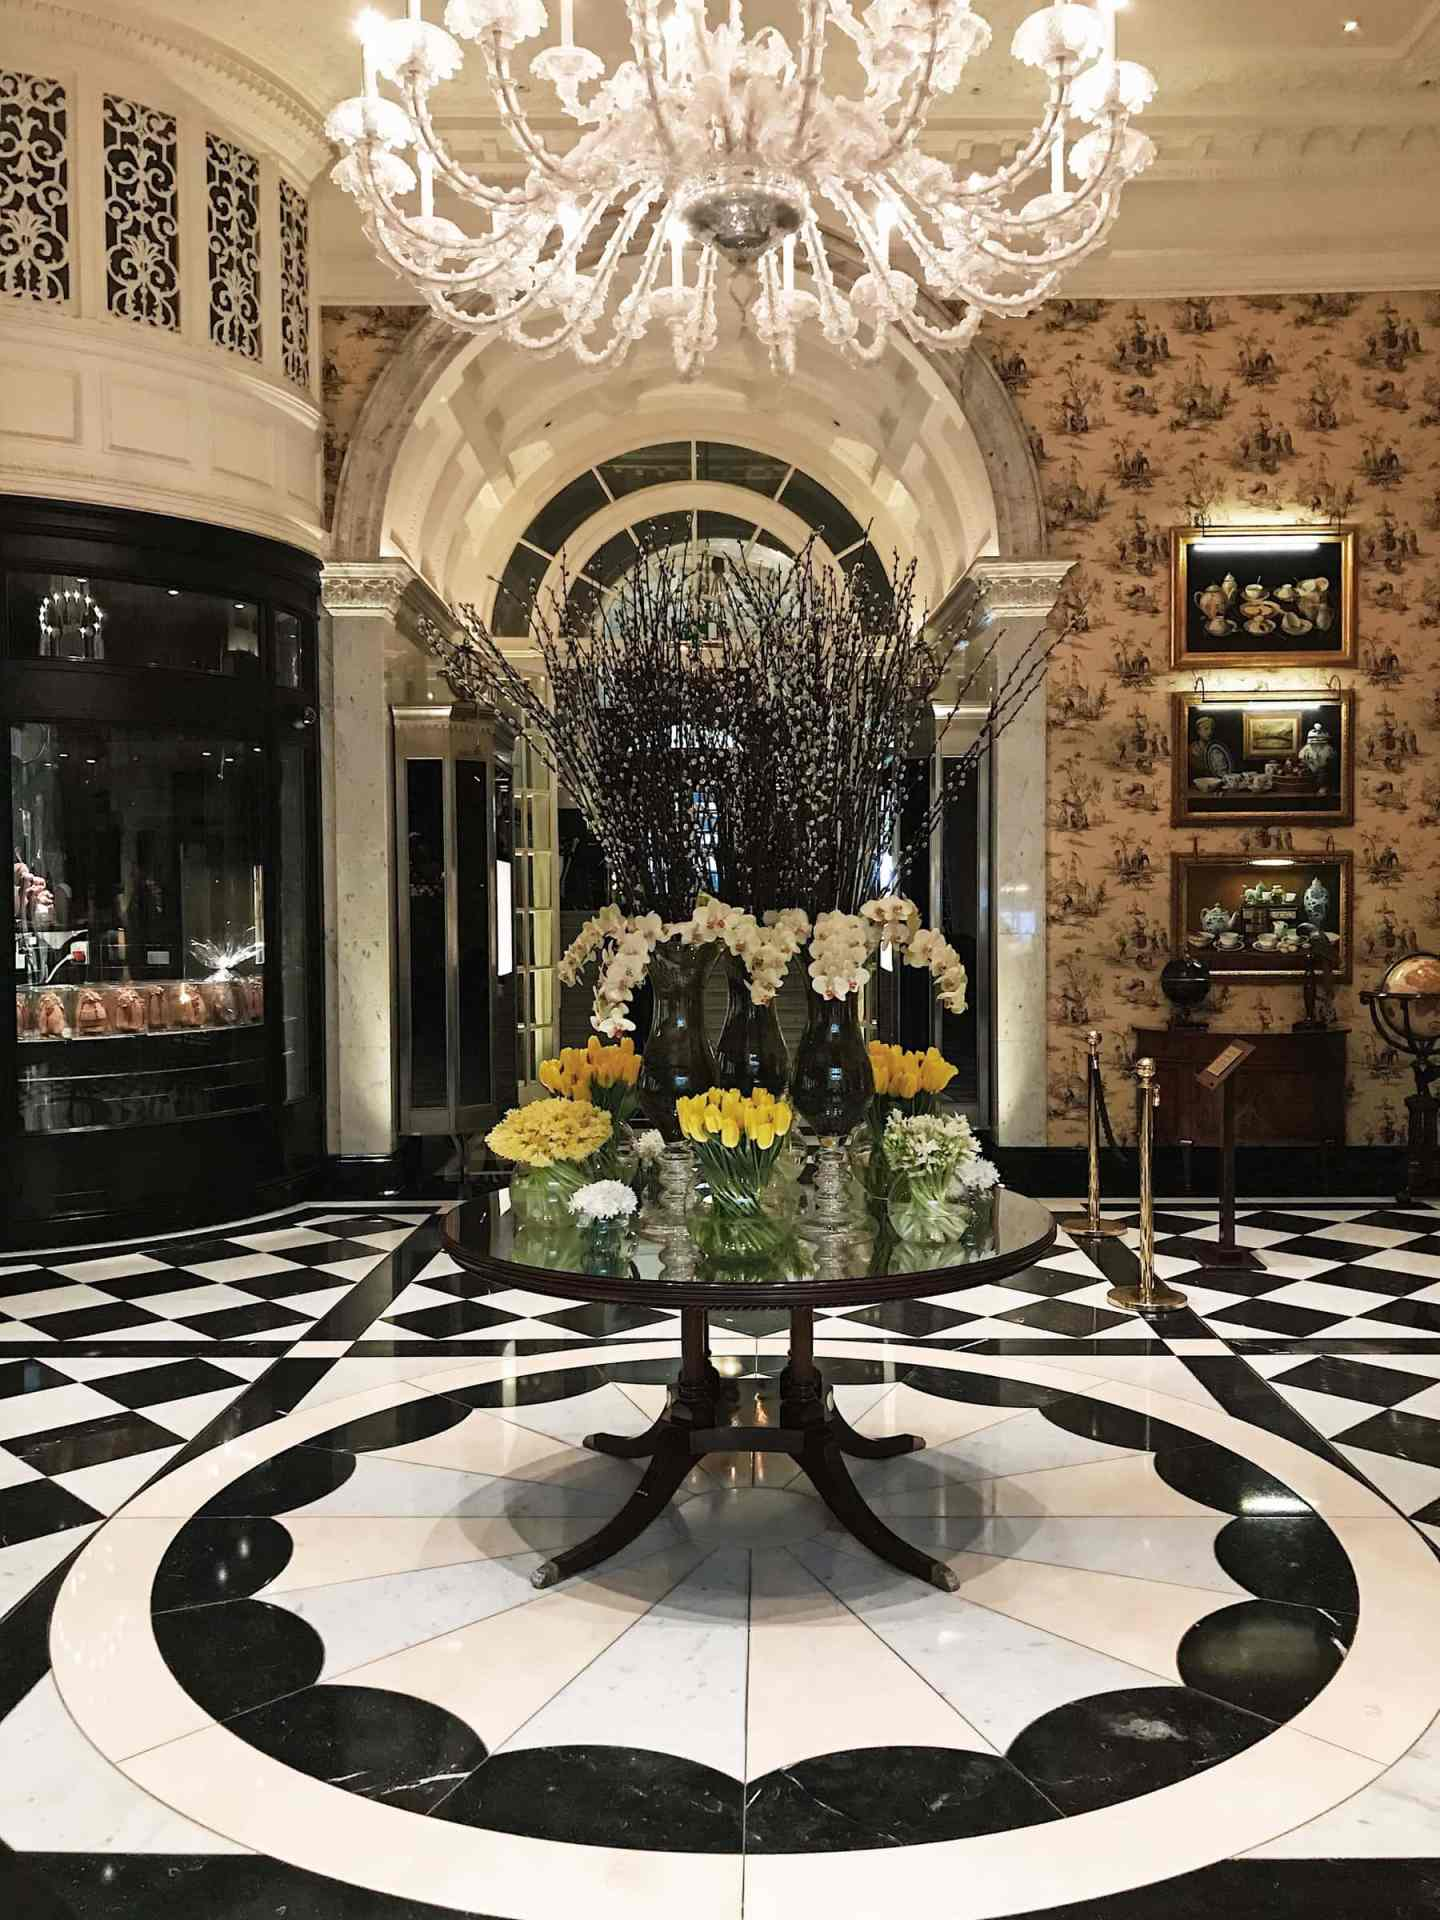 Stuninng chandelier and floral display in the Upper Thames Foyer